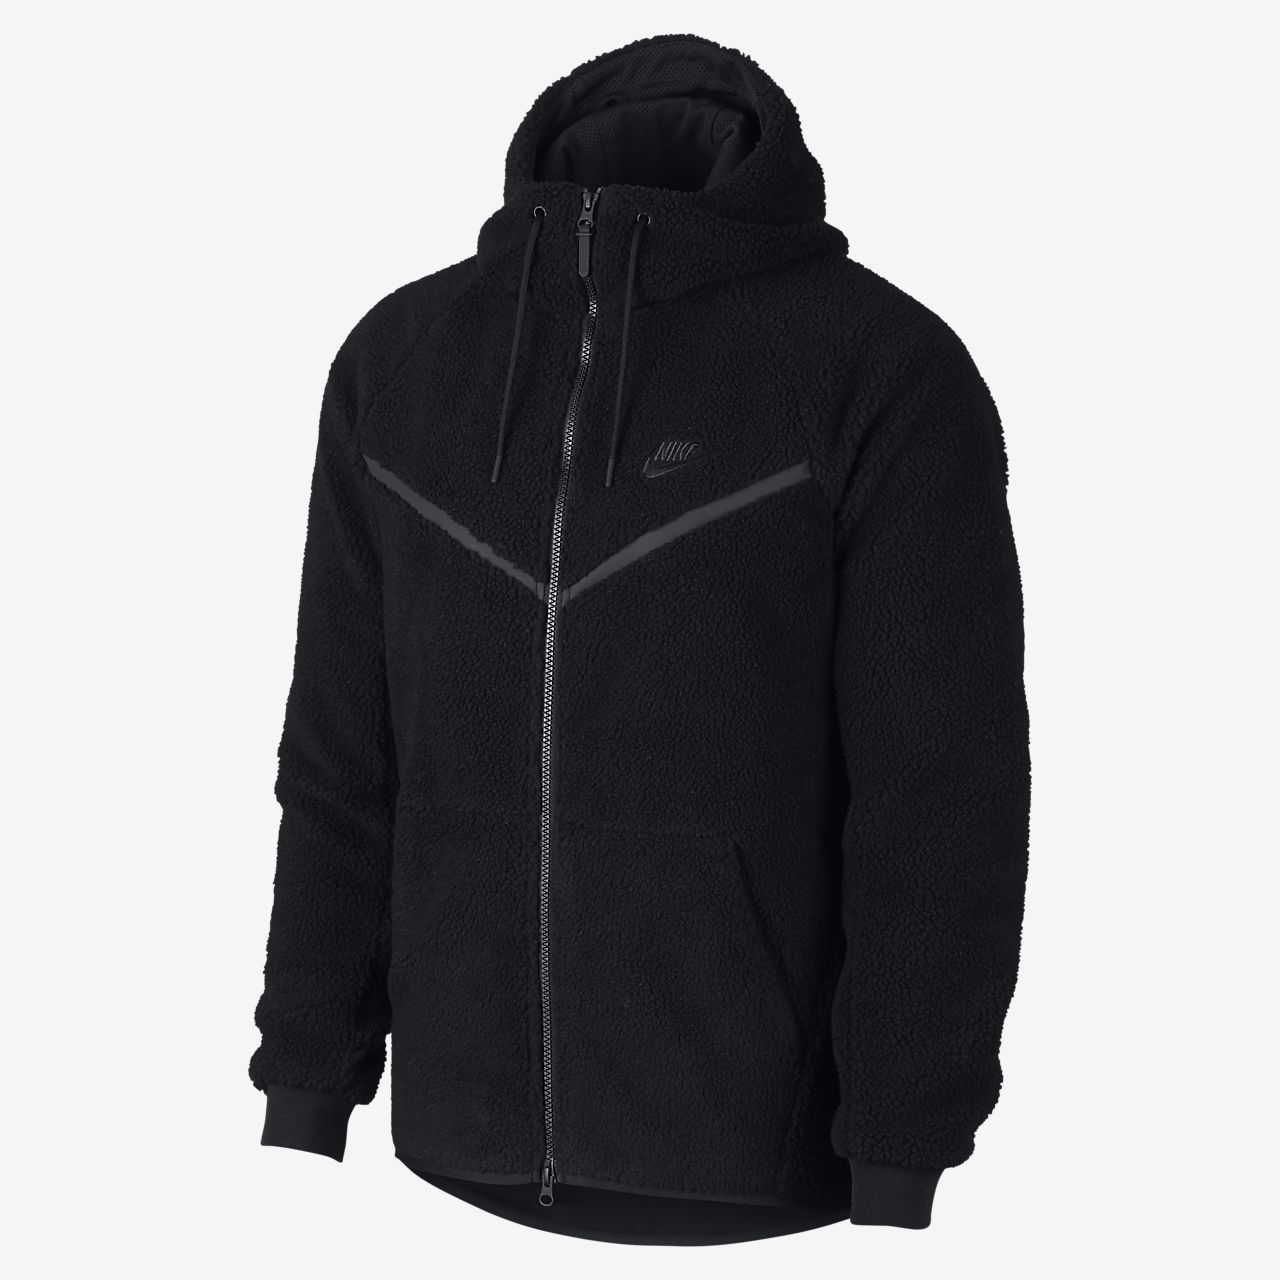 Windrunner Men's Hoodie Sherpa Ie Sportswear Tech Nike Fleece fwnIW6qx5